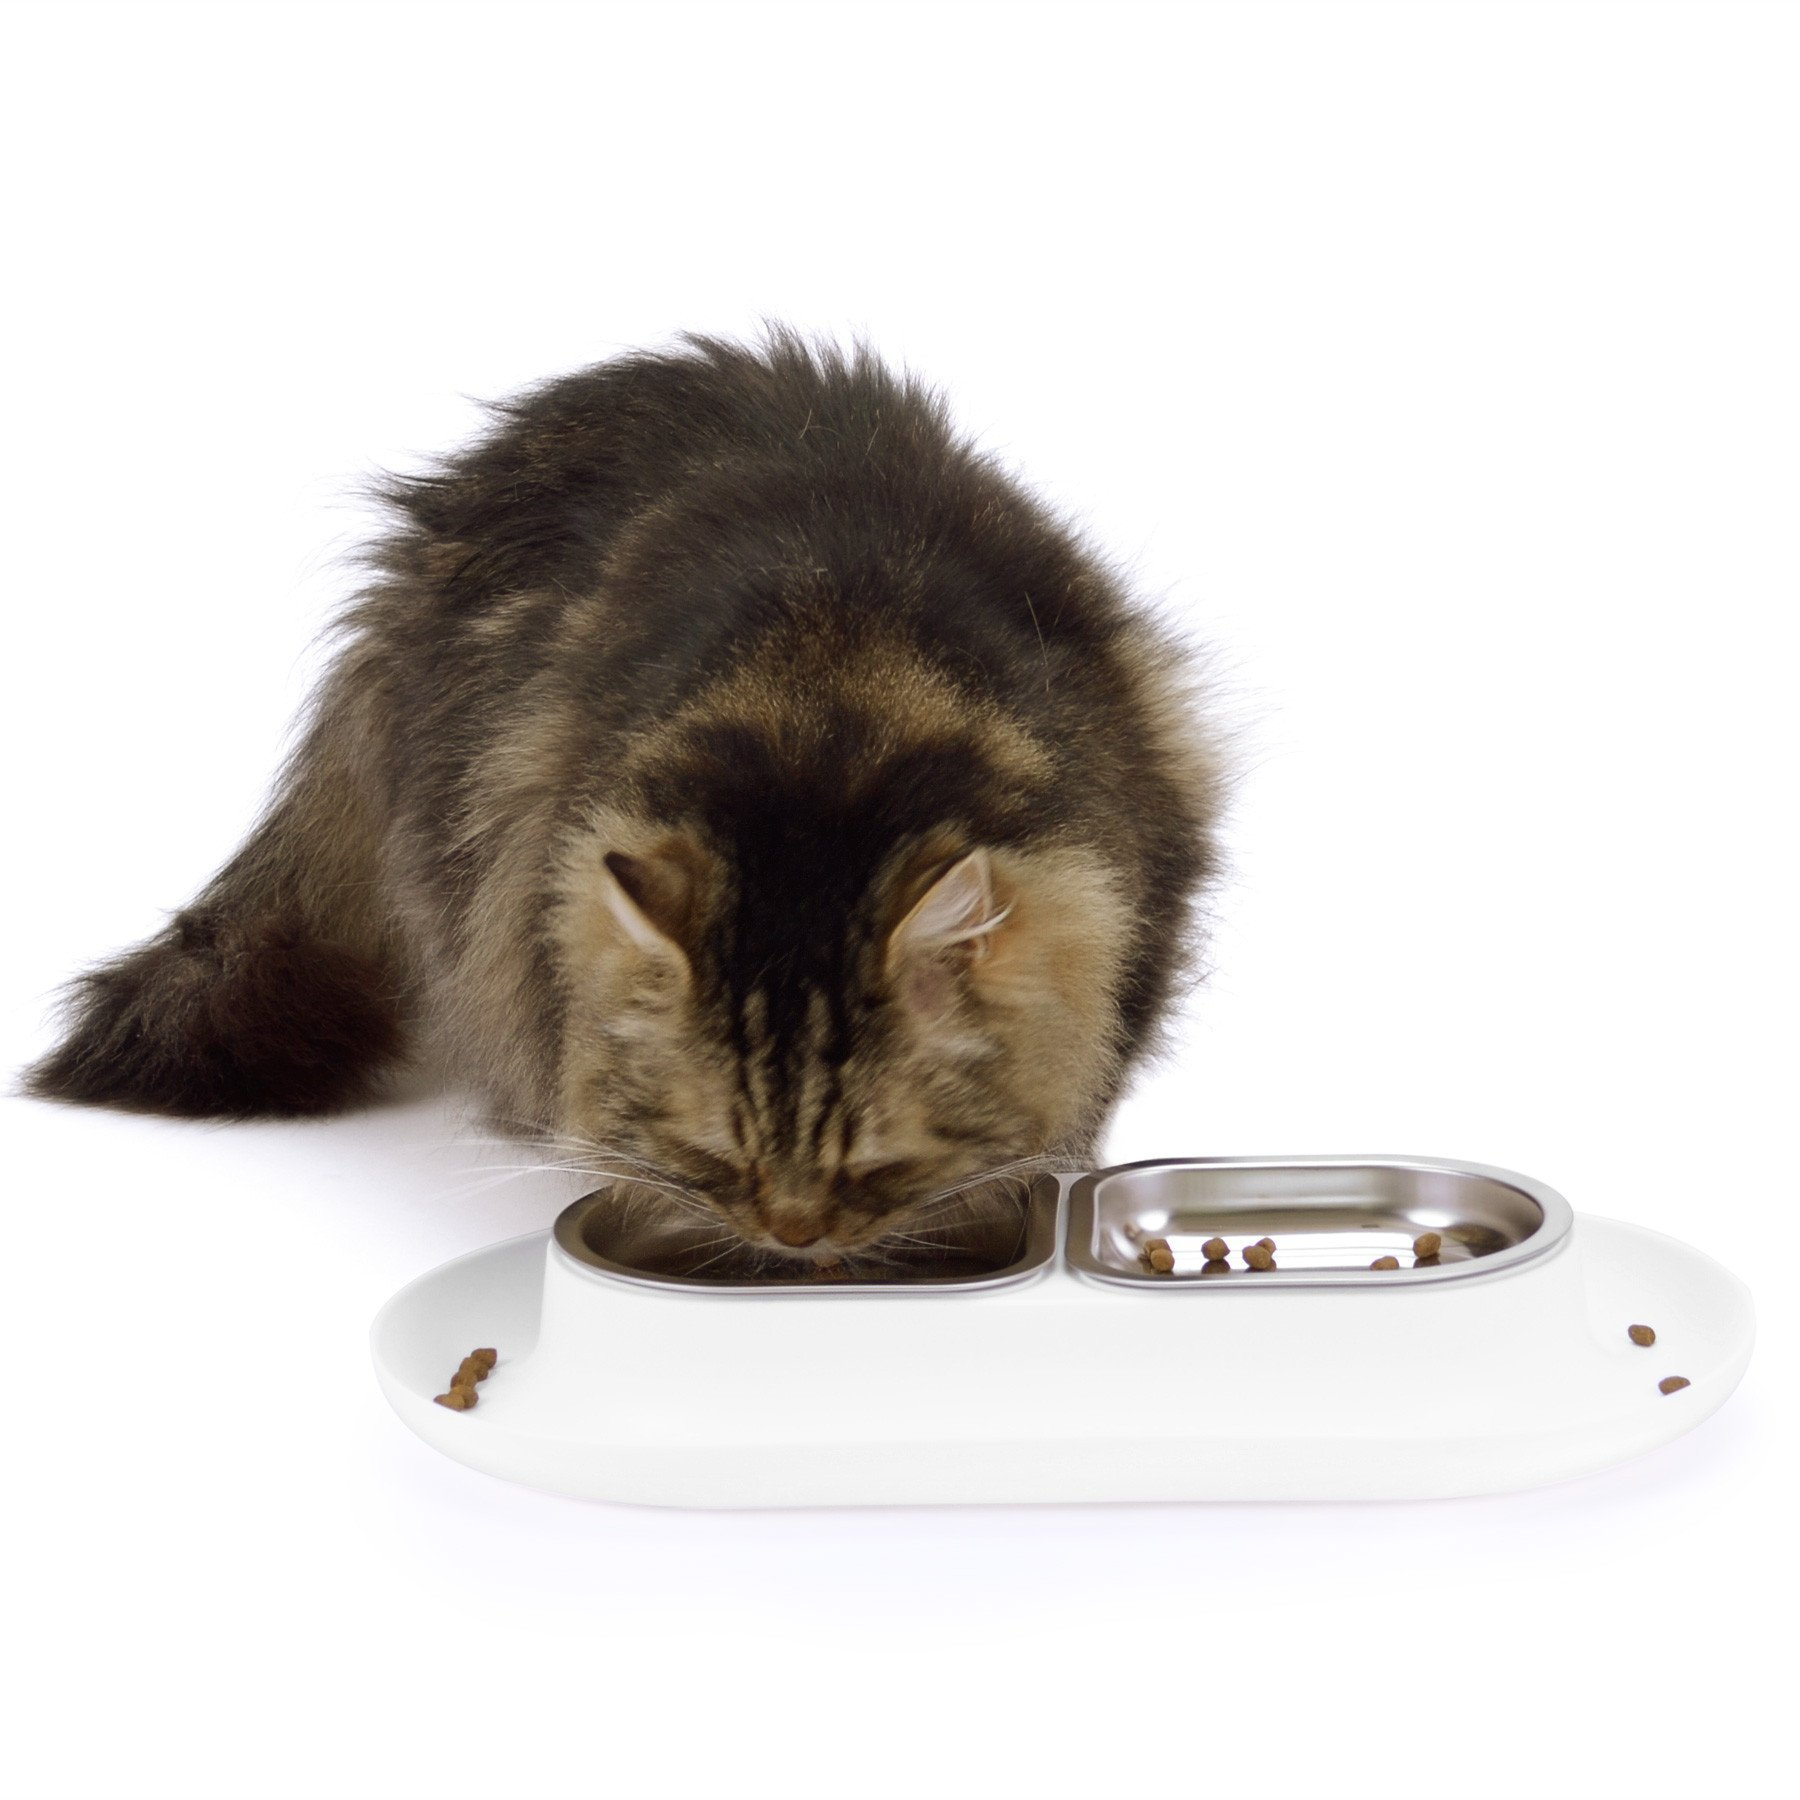 Hepper Nomnom Modern Cat and Dog Dish with Stainless Steel Bowls. Wide Tray to Keep Floors Clean and Ants Out of the Food! Color White